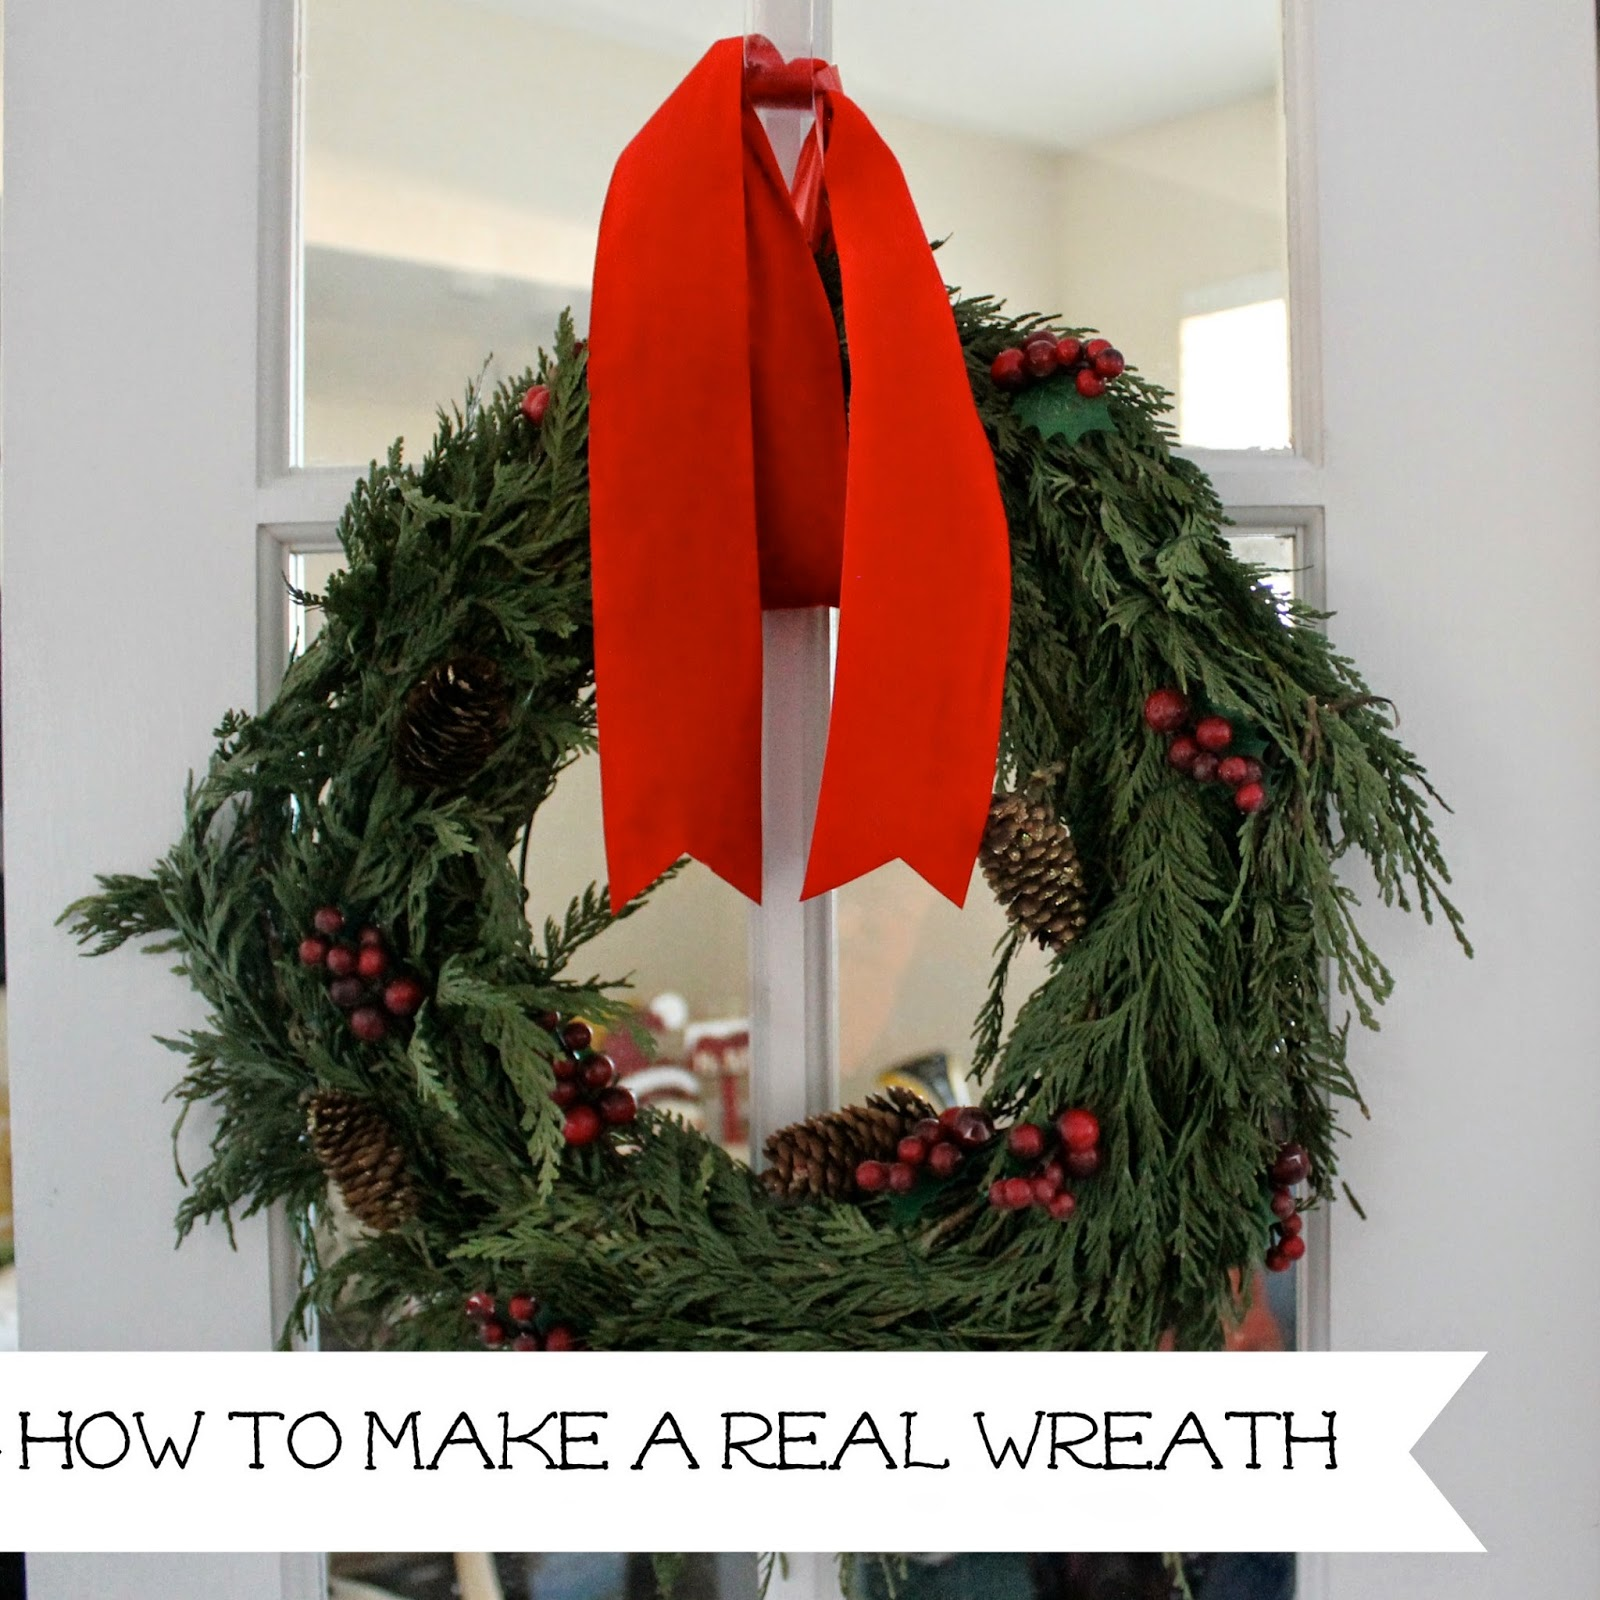 http://wonderfullymadebyleslie.blogspot.com/2013/12/making-real-christmas-wreaths.html